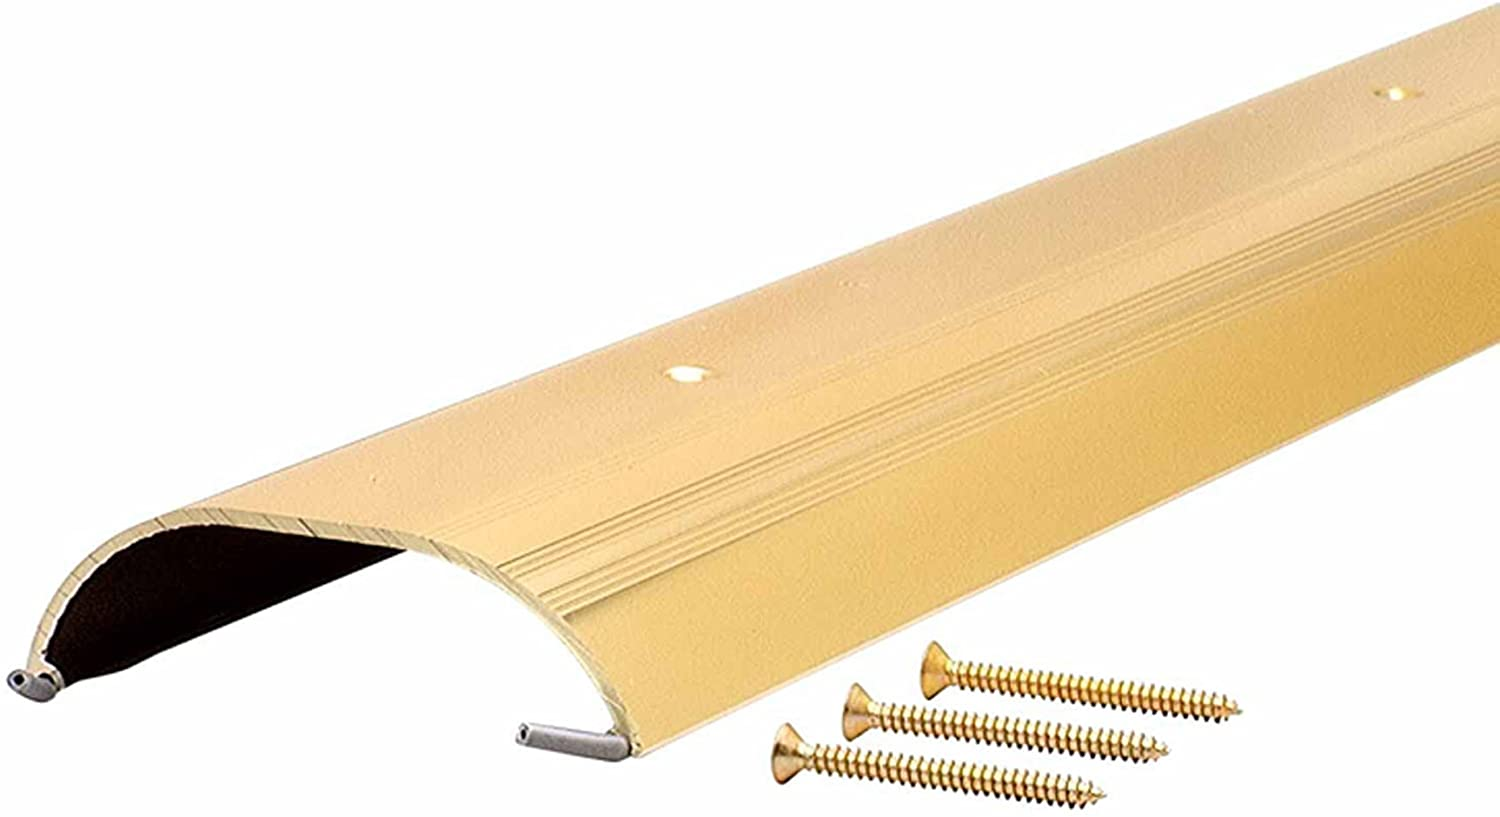 M-D Building Products 81697 1-Inch by 4-Inch by 36-Inch TH009 High Dome Top Threshold, Brite-Dip Gold